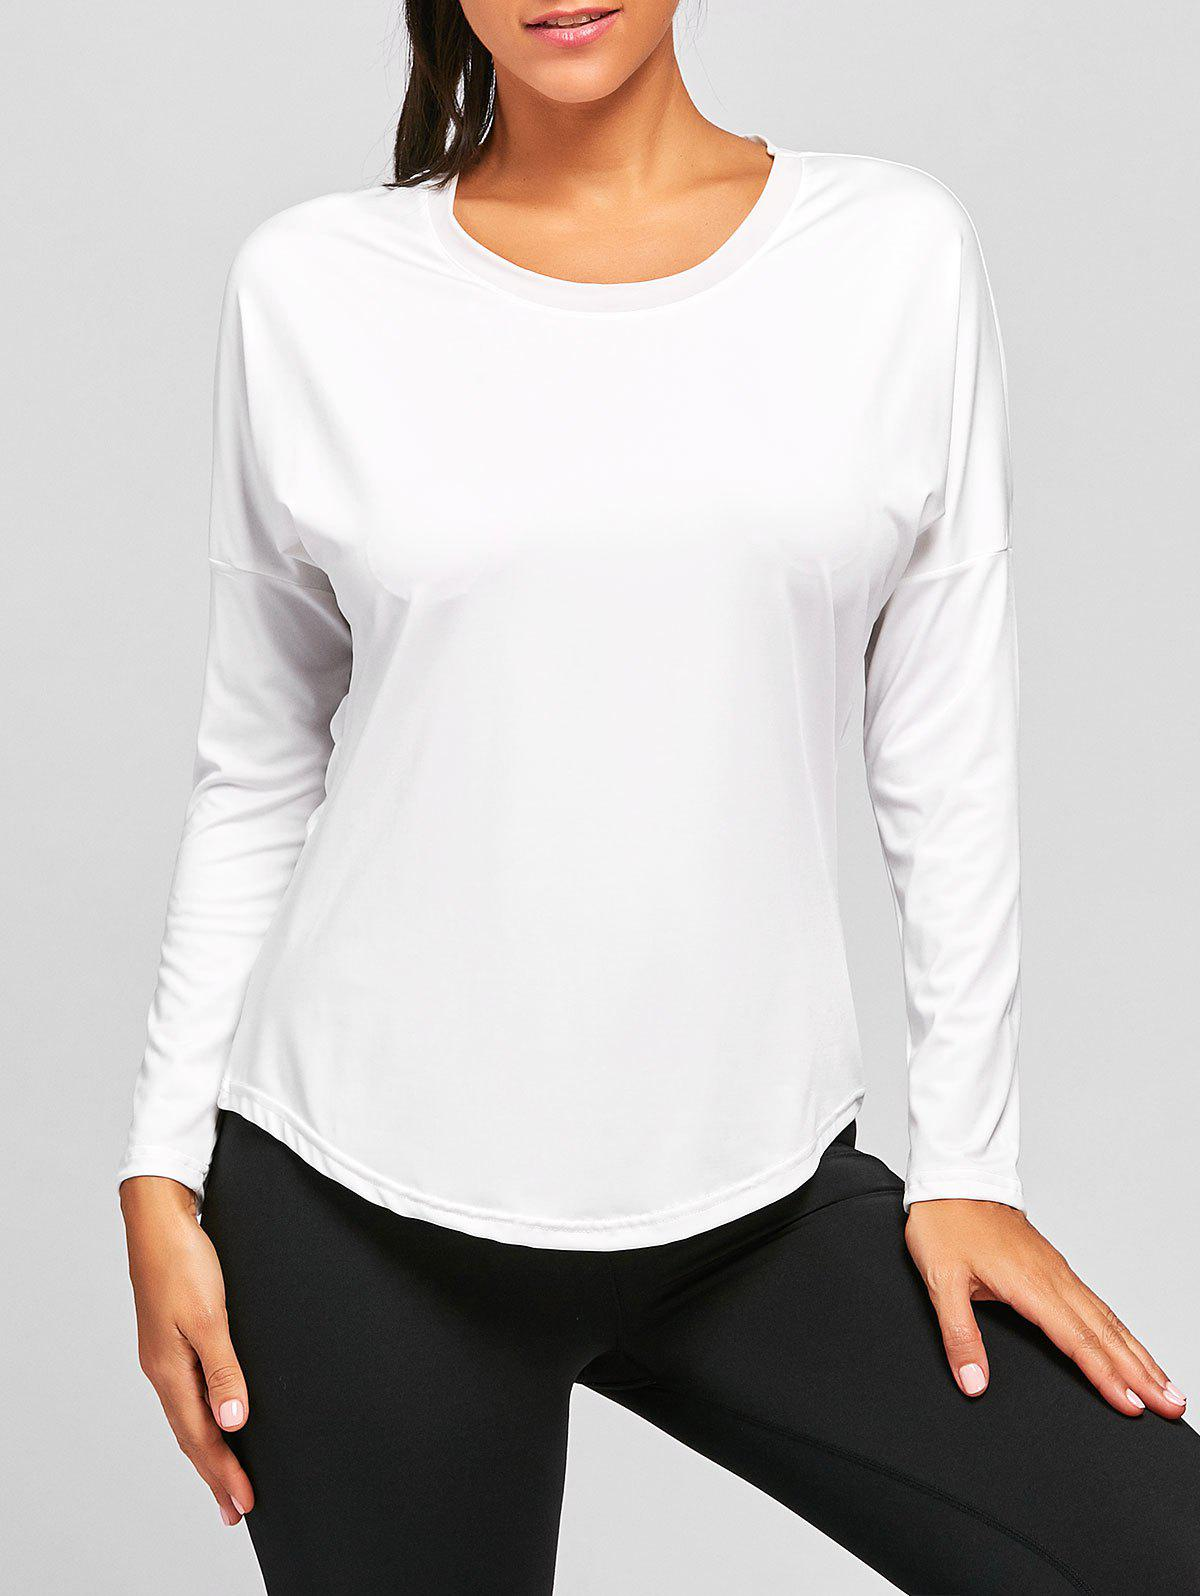 See Through Sports Long Sleeve T-shirt - WHITE L